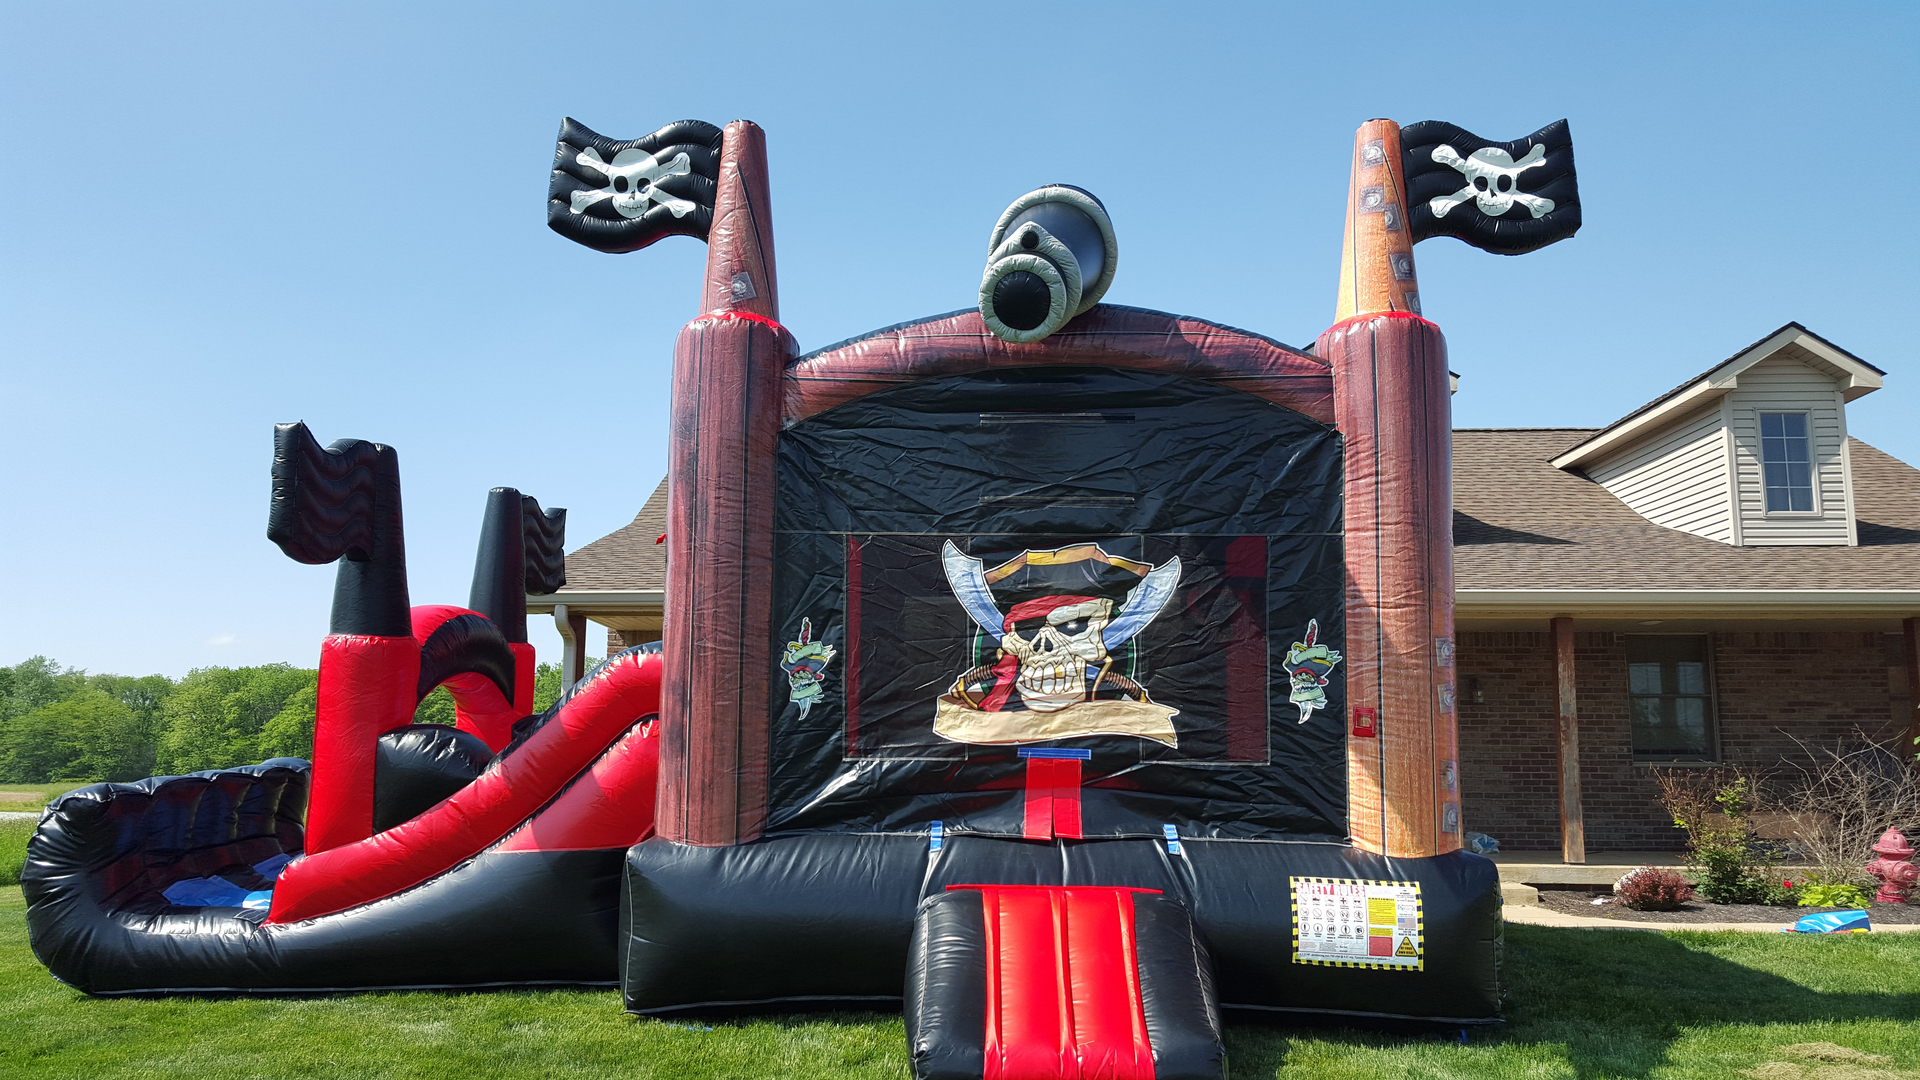 Fun Jumps Bounce House Rentals Llc Bounce House Rental indiana